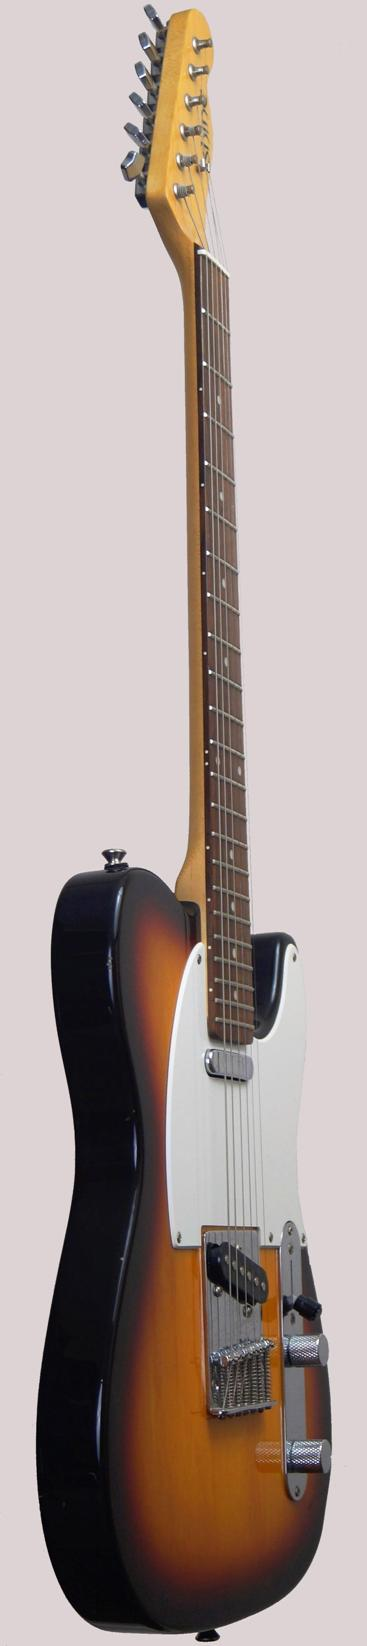 Shine Korea vintage sunburst Tele at Ukulele Corner